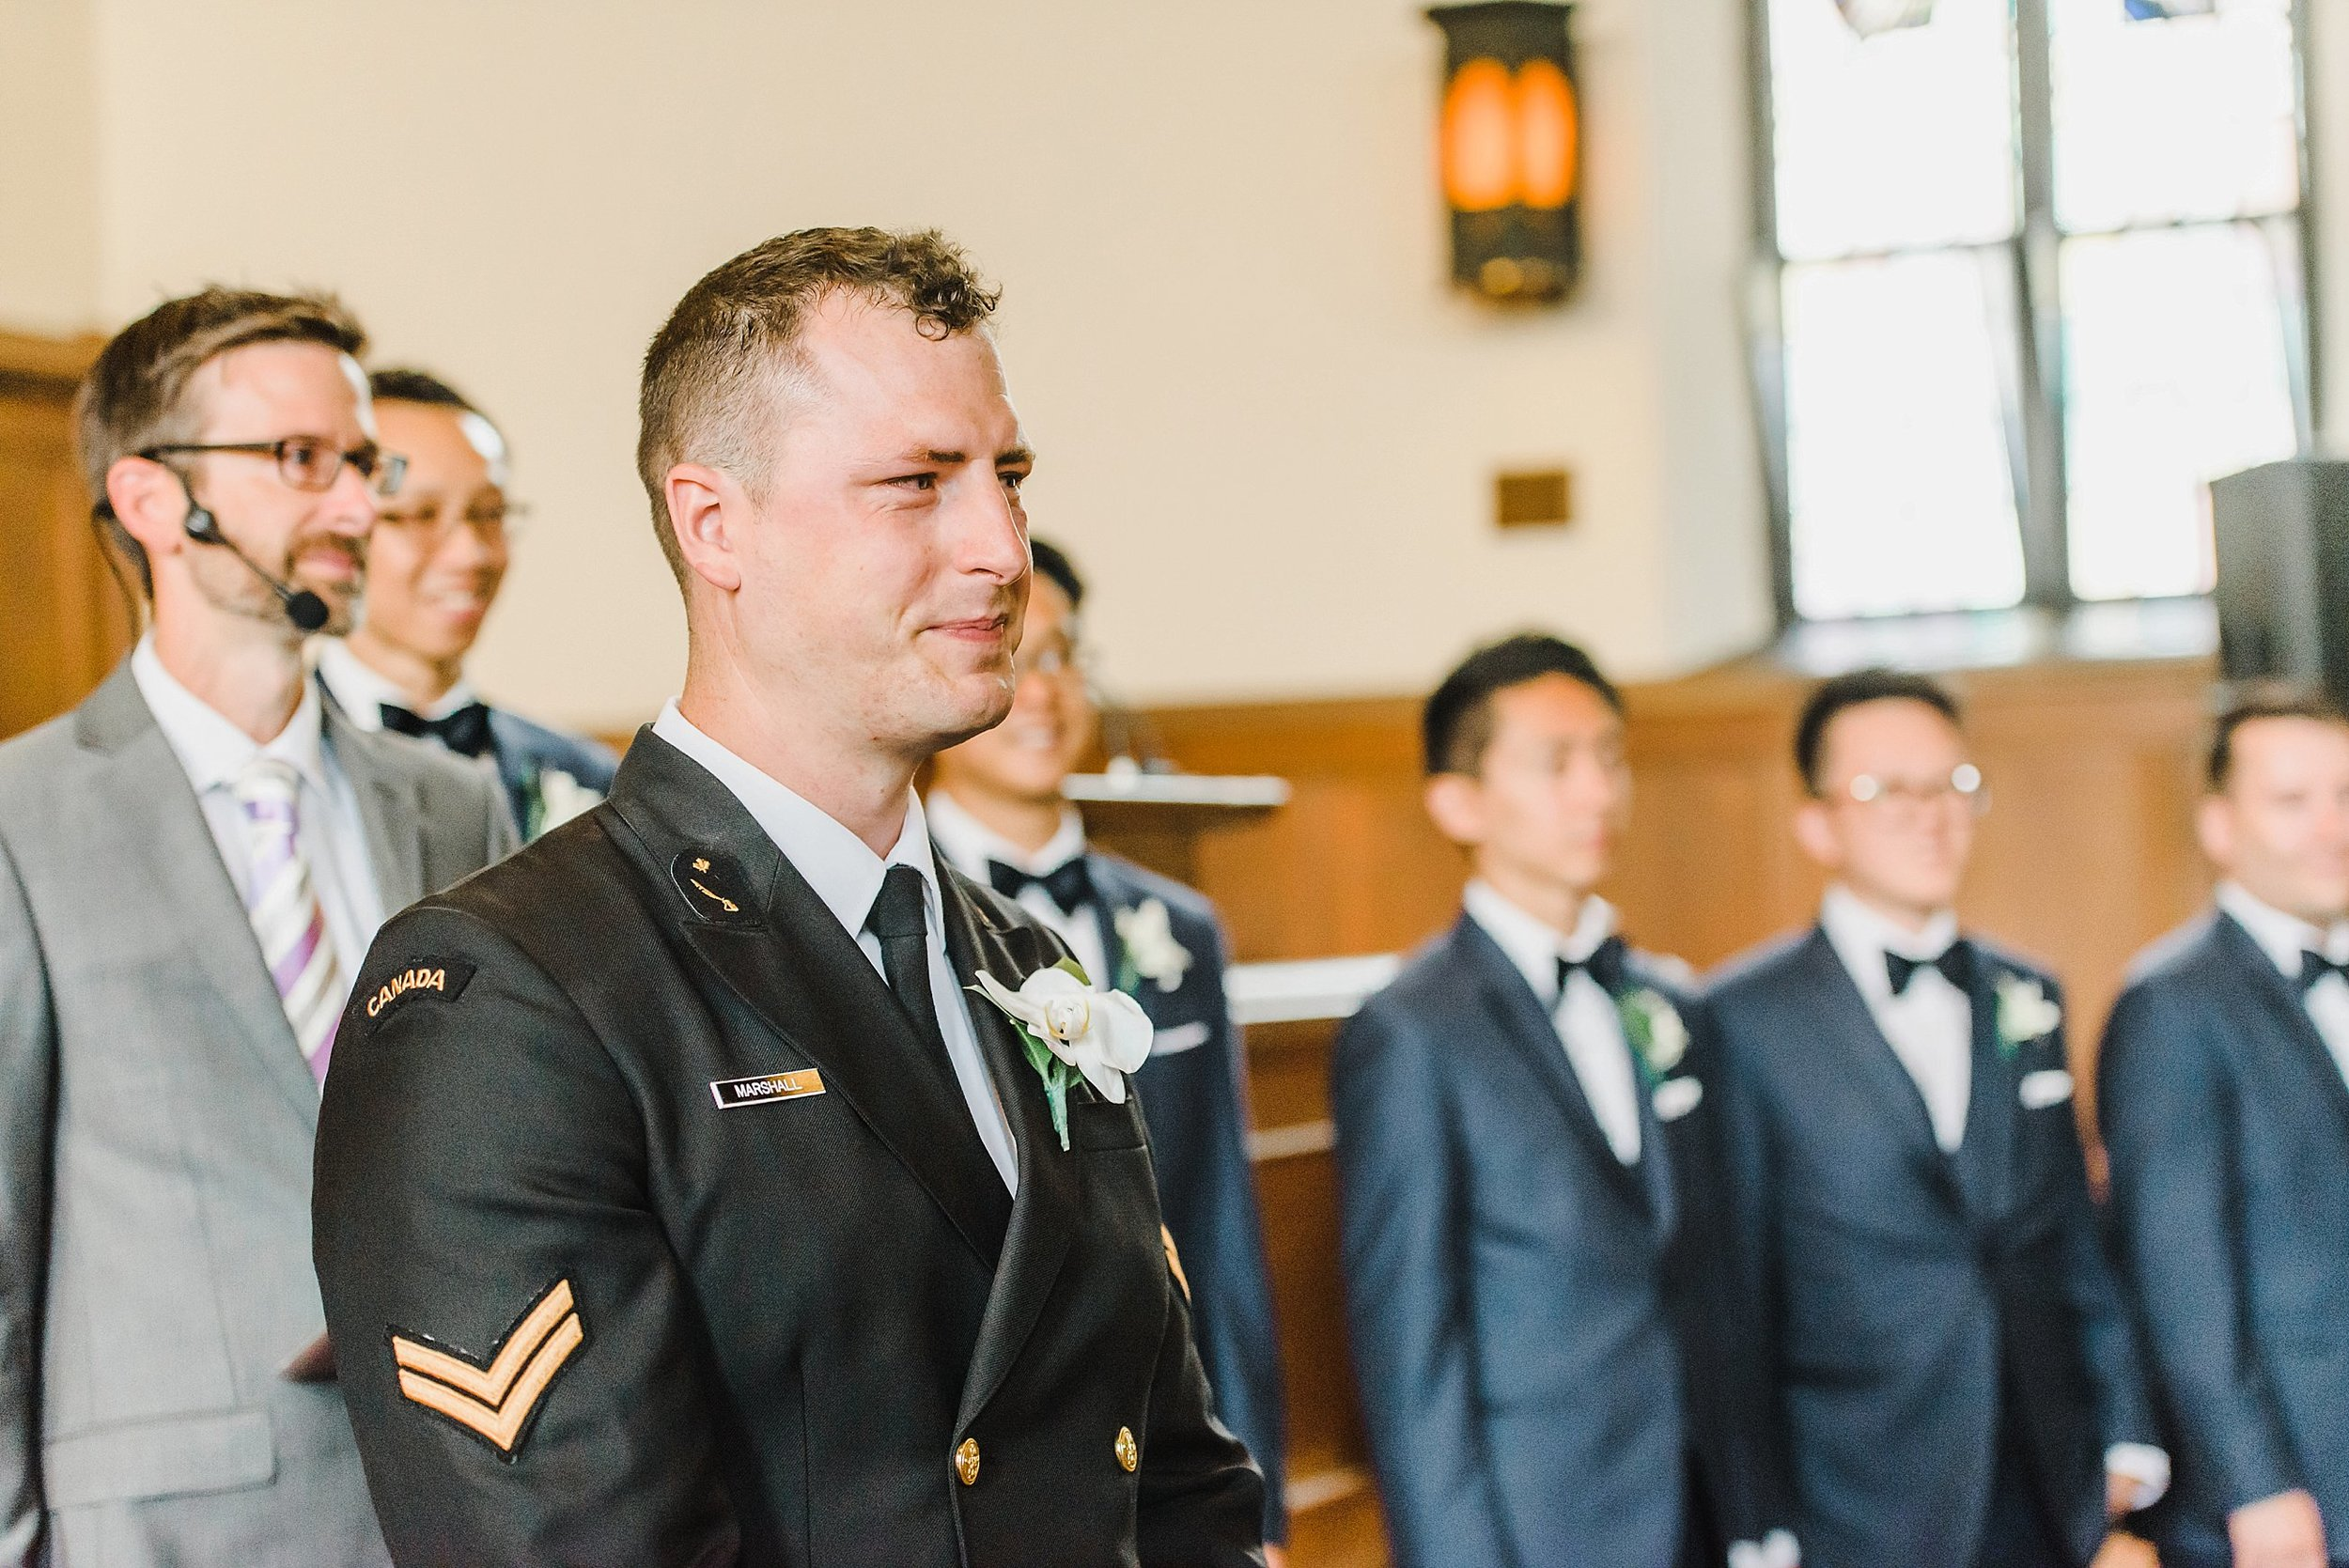 We all teared up at Ryan's reaction to seeing his bride walking down the aisle!